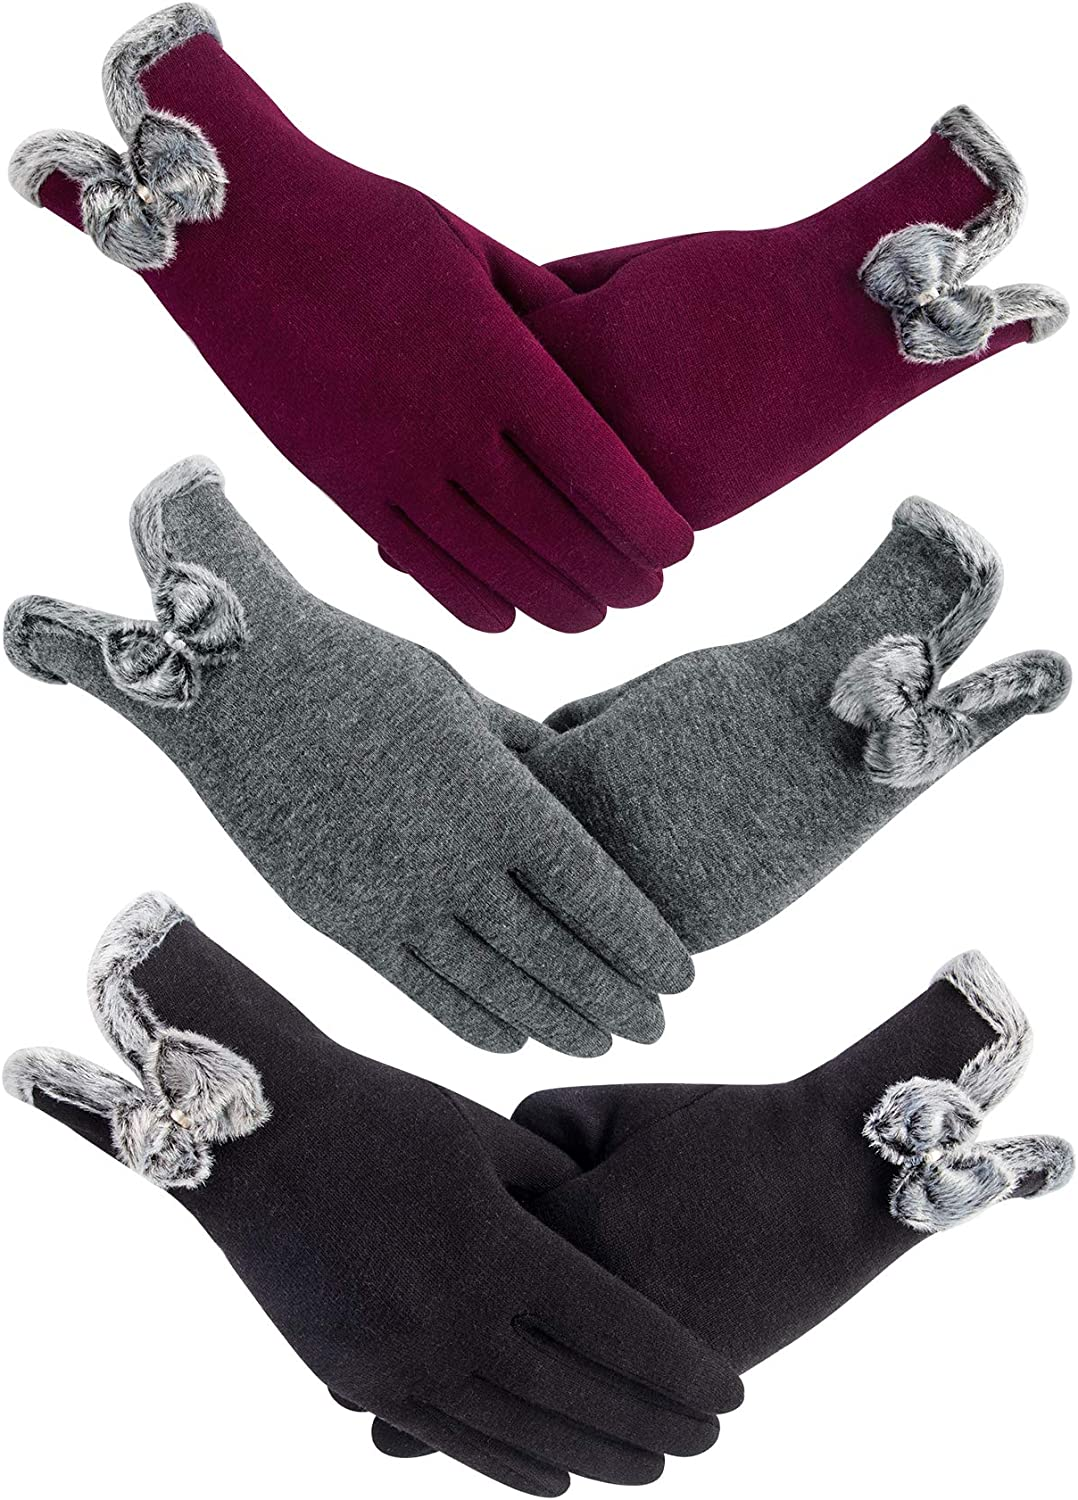 YSense 3 Pairs Warm Touch Screen Gloves, Women Winter Gloves Fleece Lined Windproof Gloves for Women Gifts Stocking Stuffers